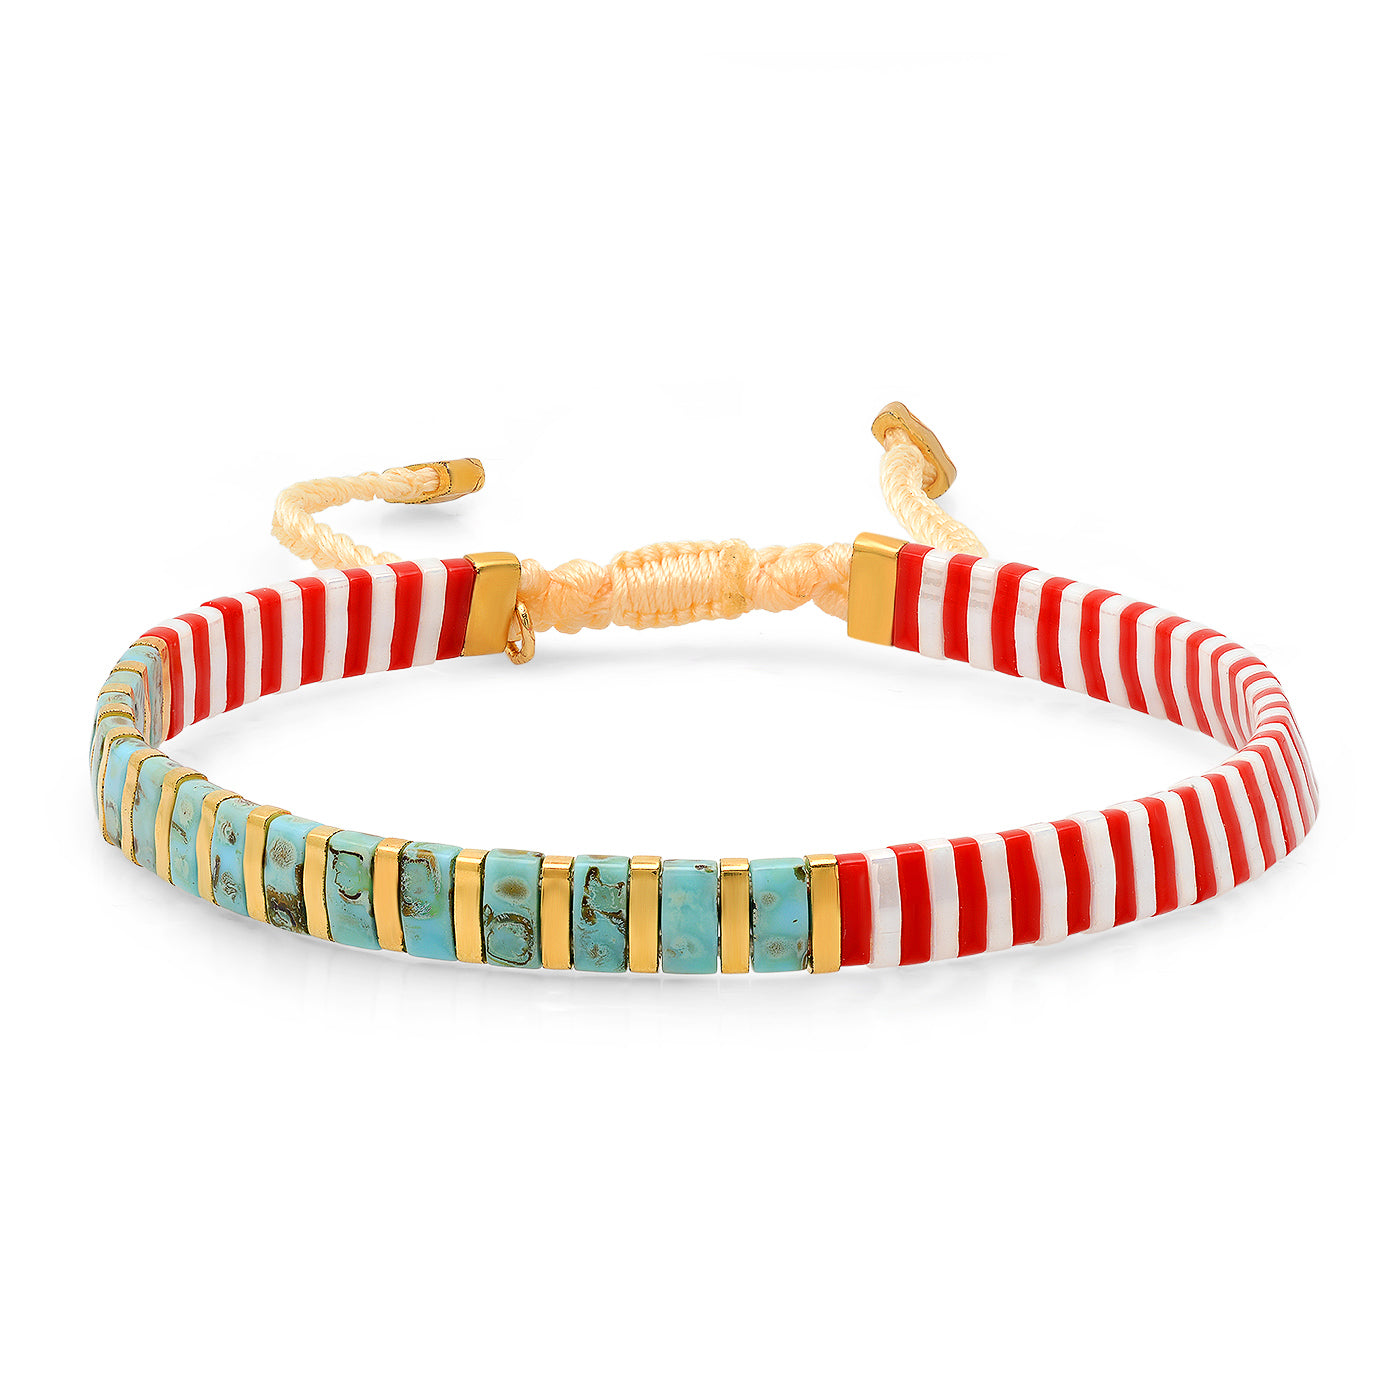 Safari Bracelet in Parrot